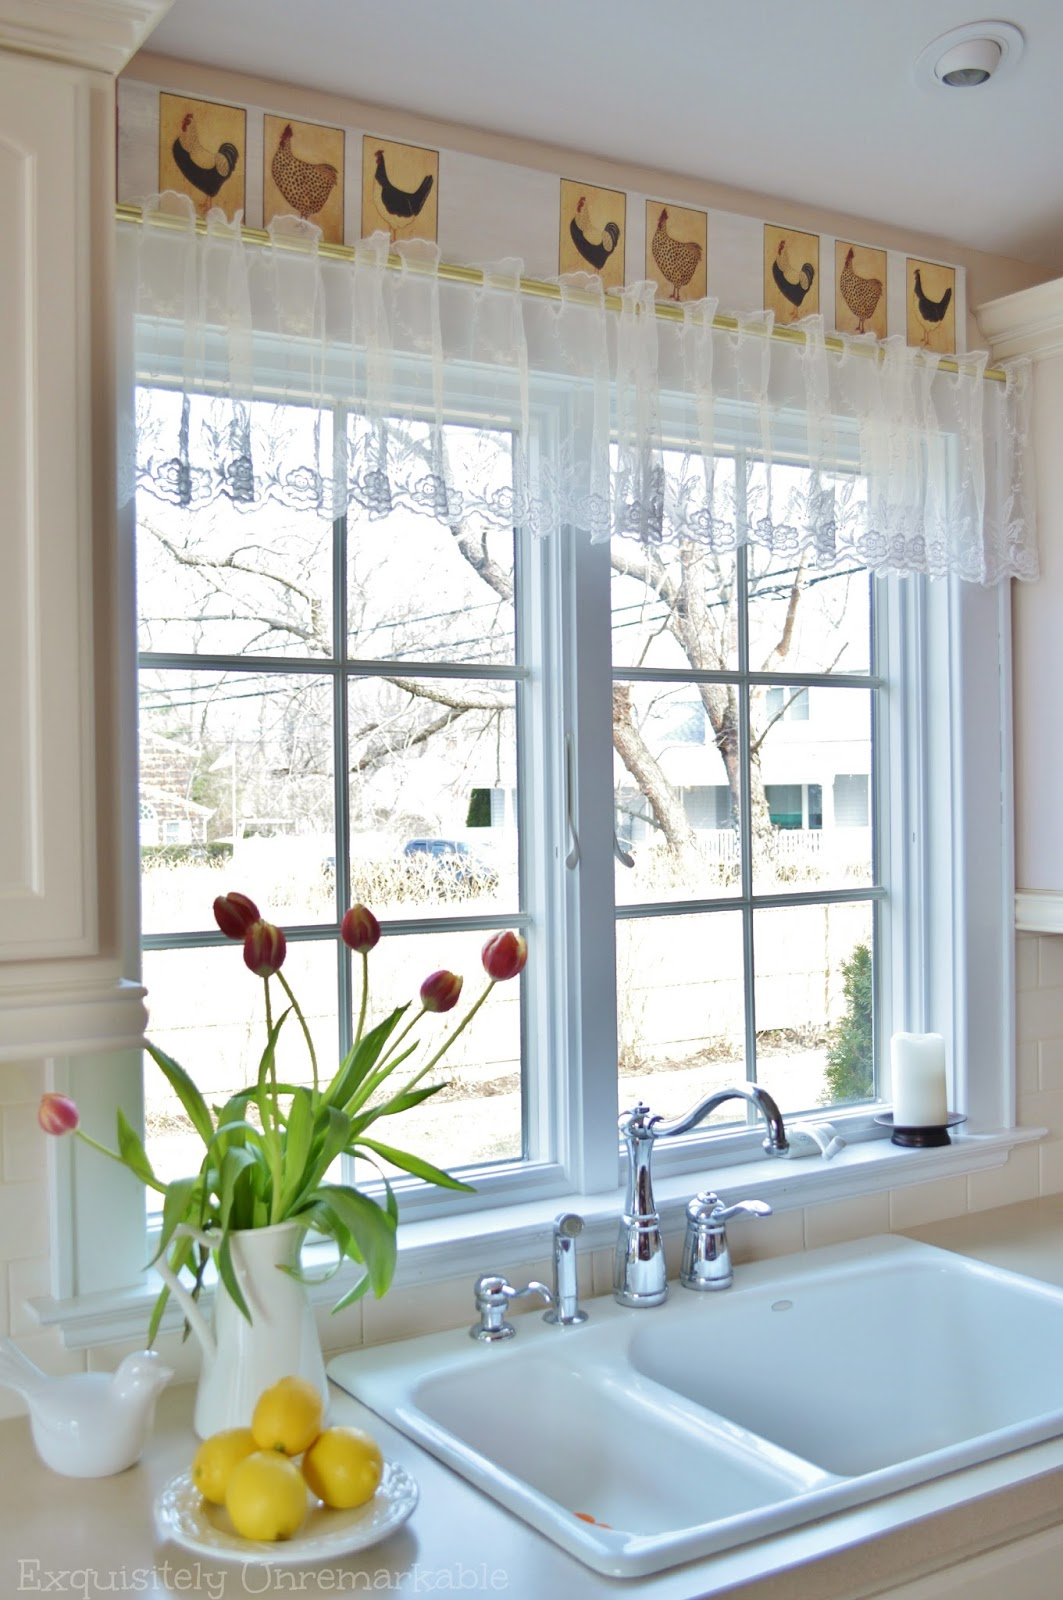 Farmhouse Kitchen Decor With Lace Curtains